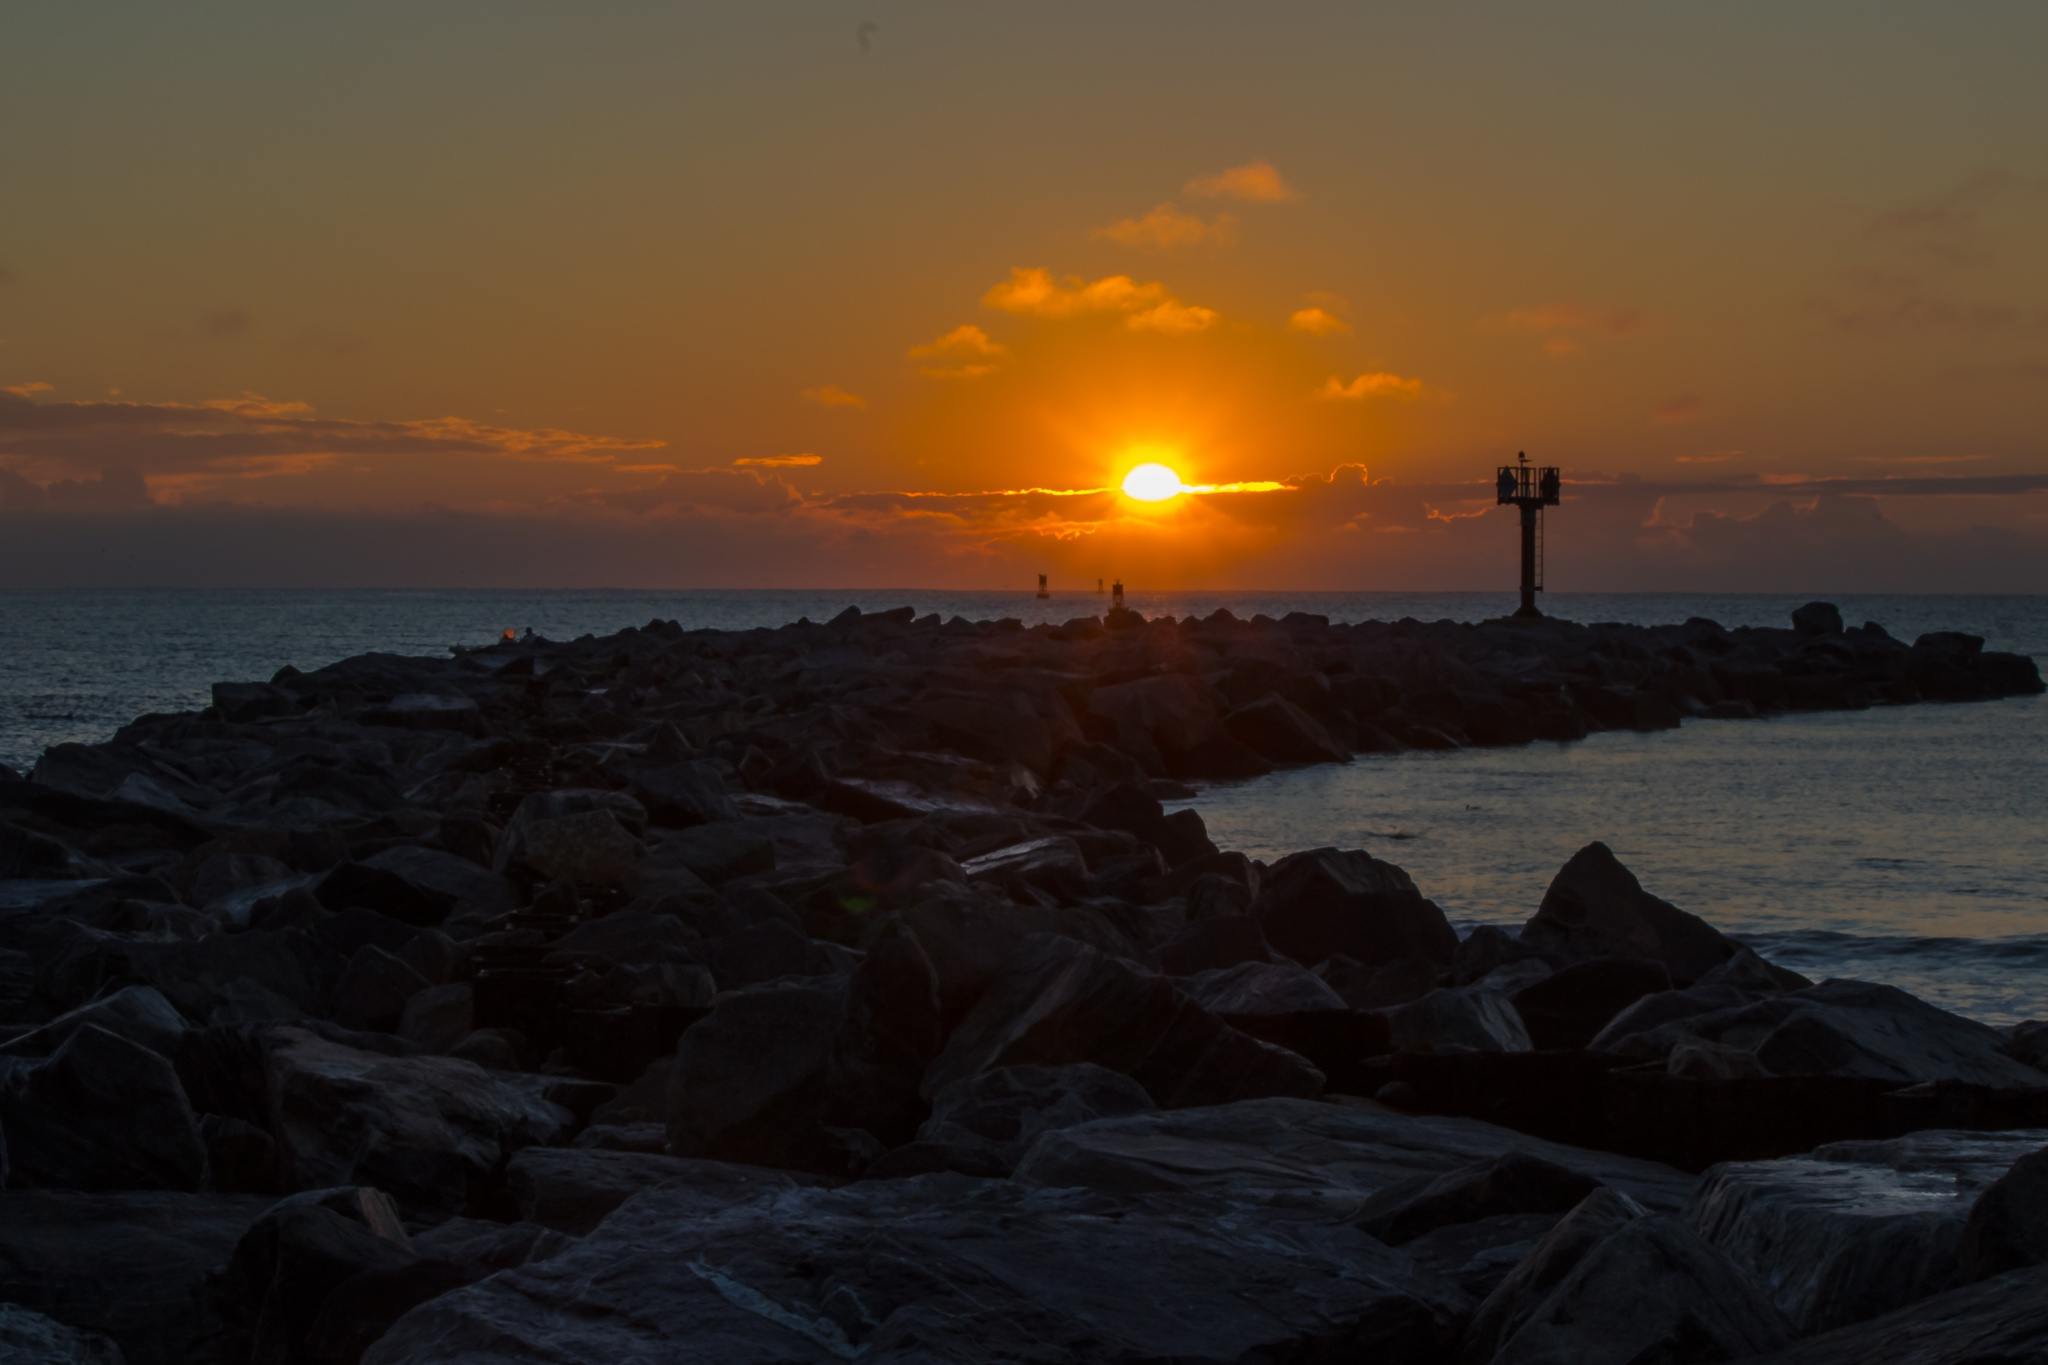 Sunrise Over the Jetty by Barry Melamed